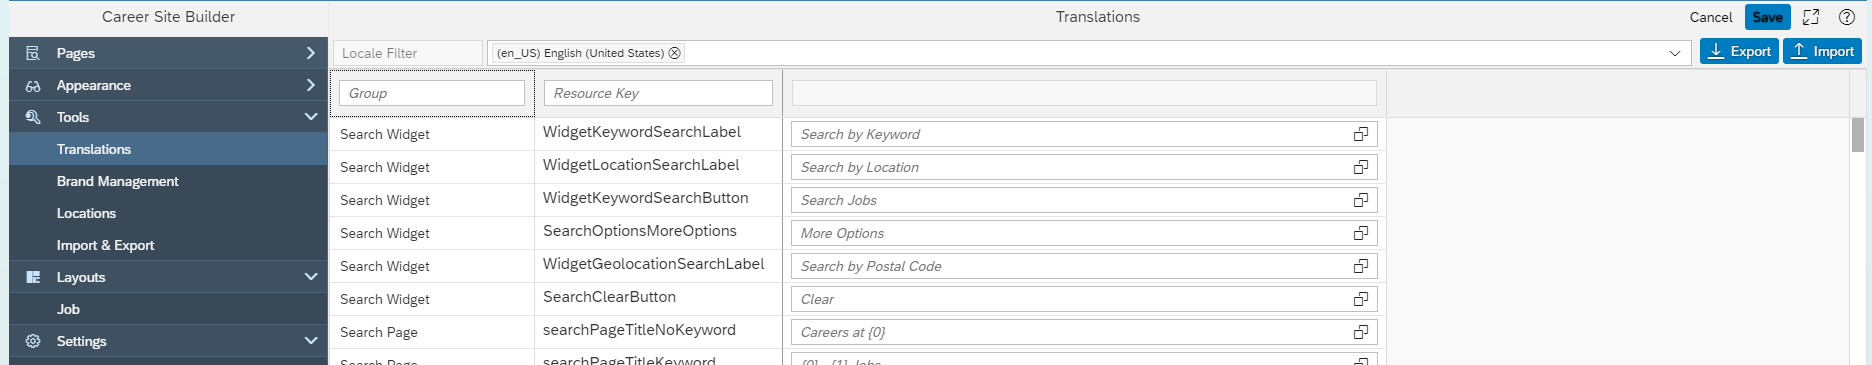 Example of Translations inside Career Site Builder